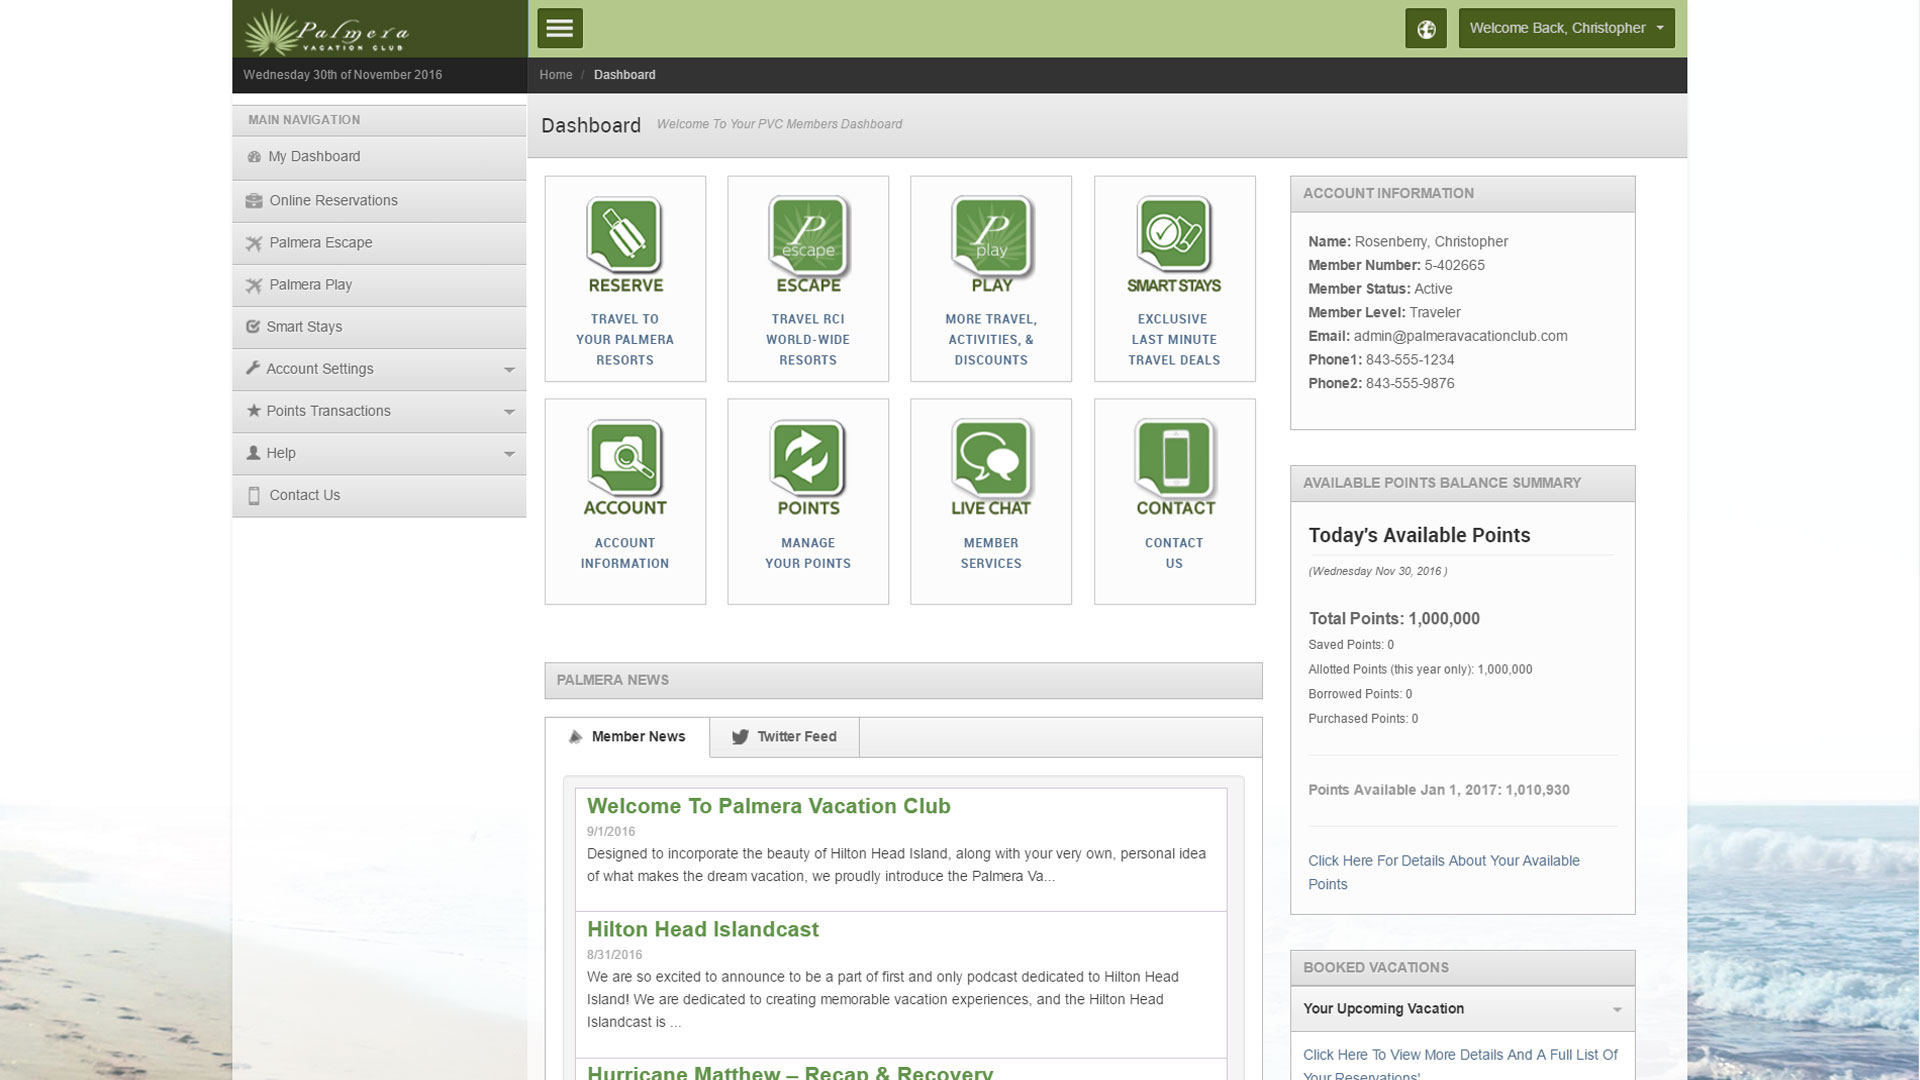 Palmera Vacation Club - Member Portal dashboard